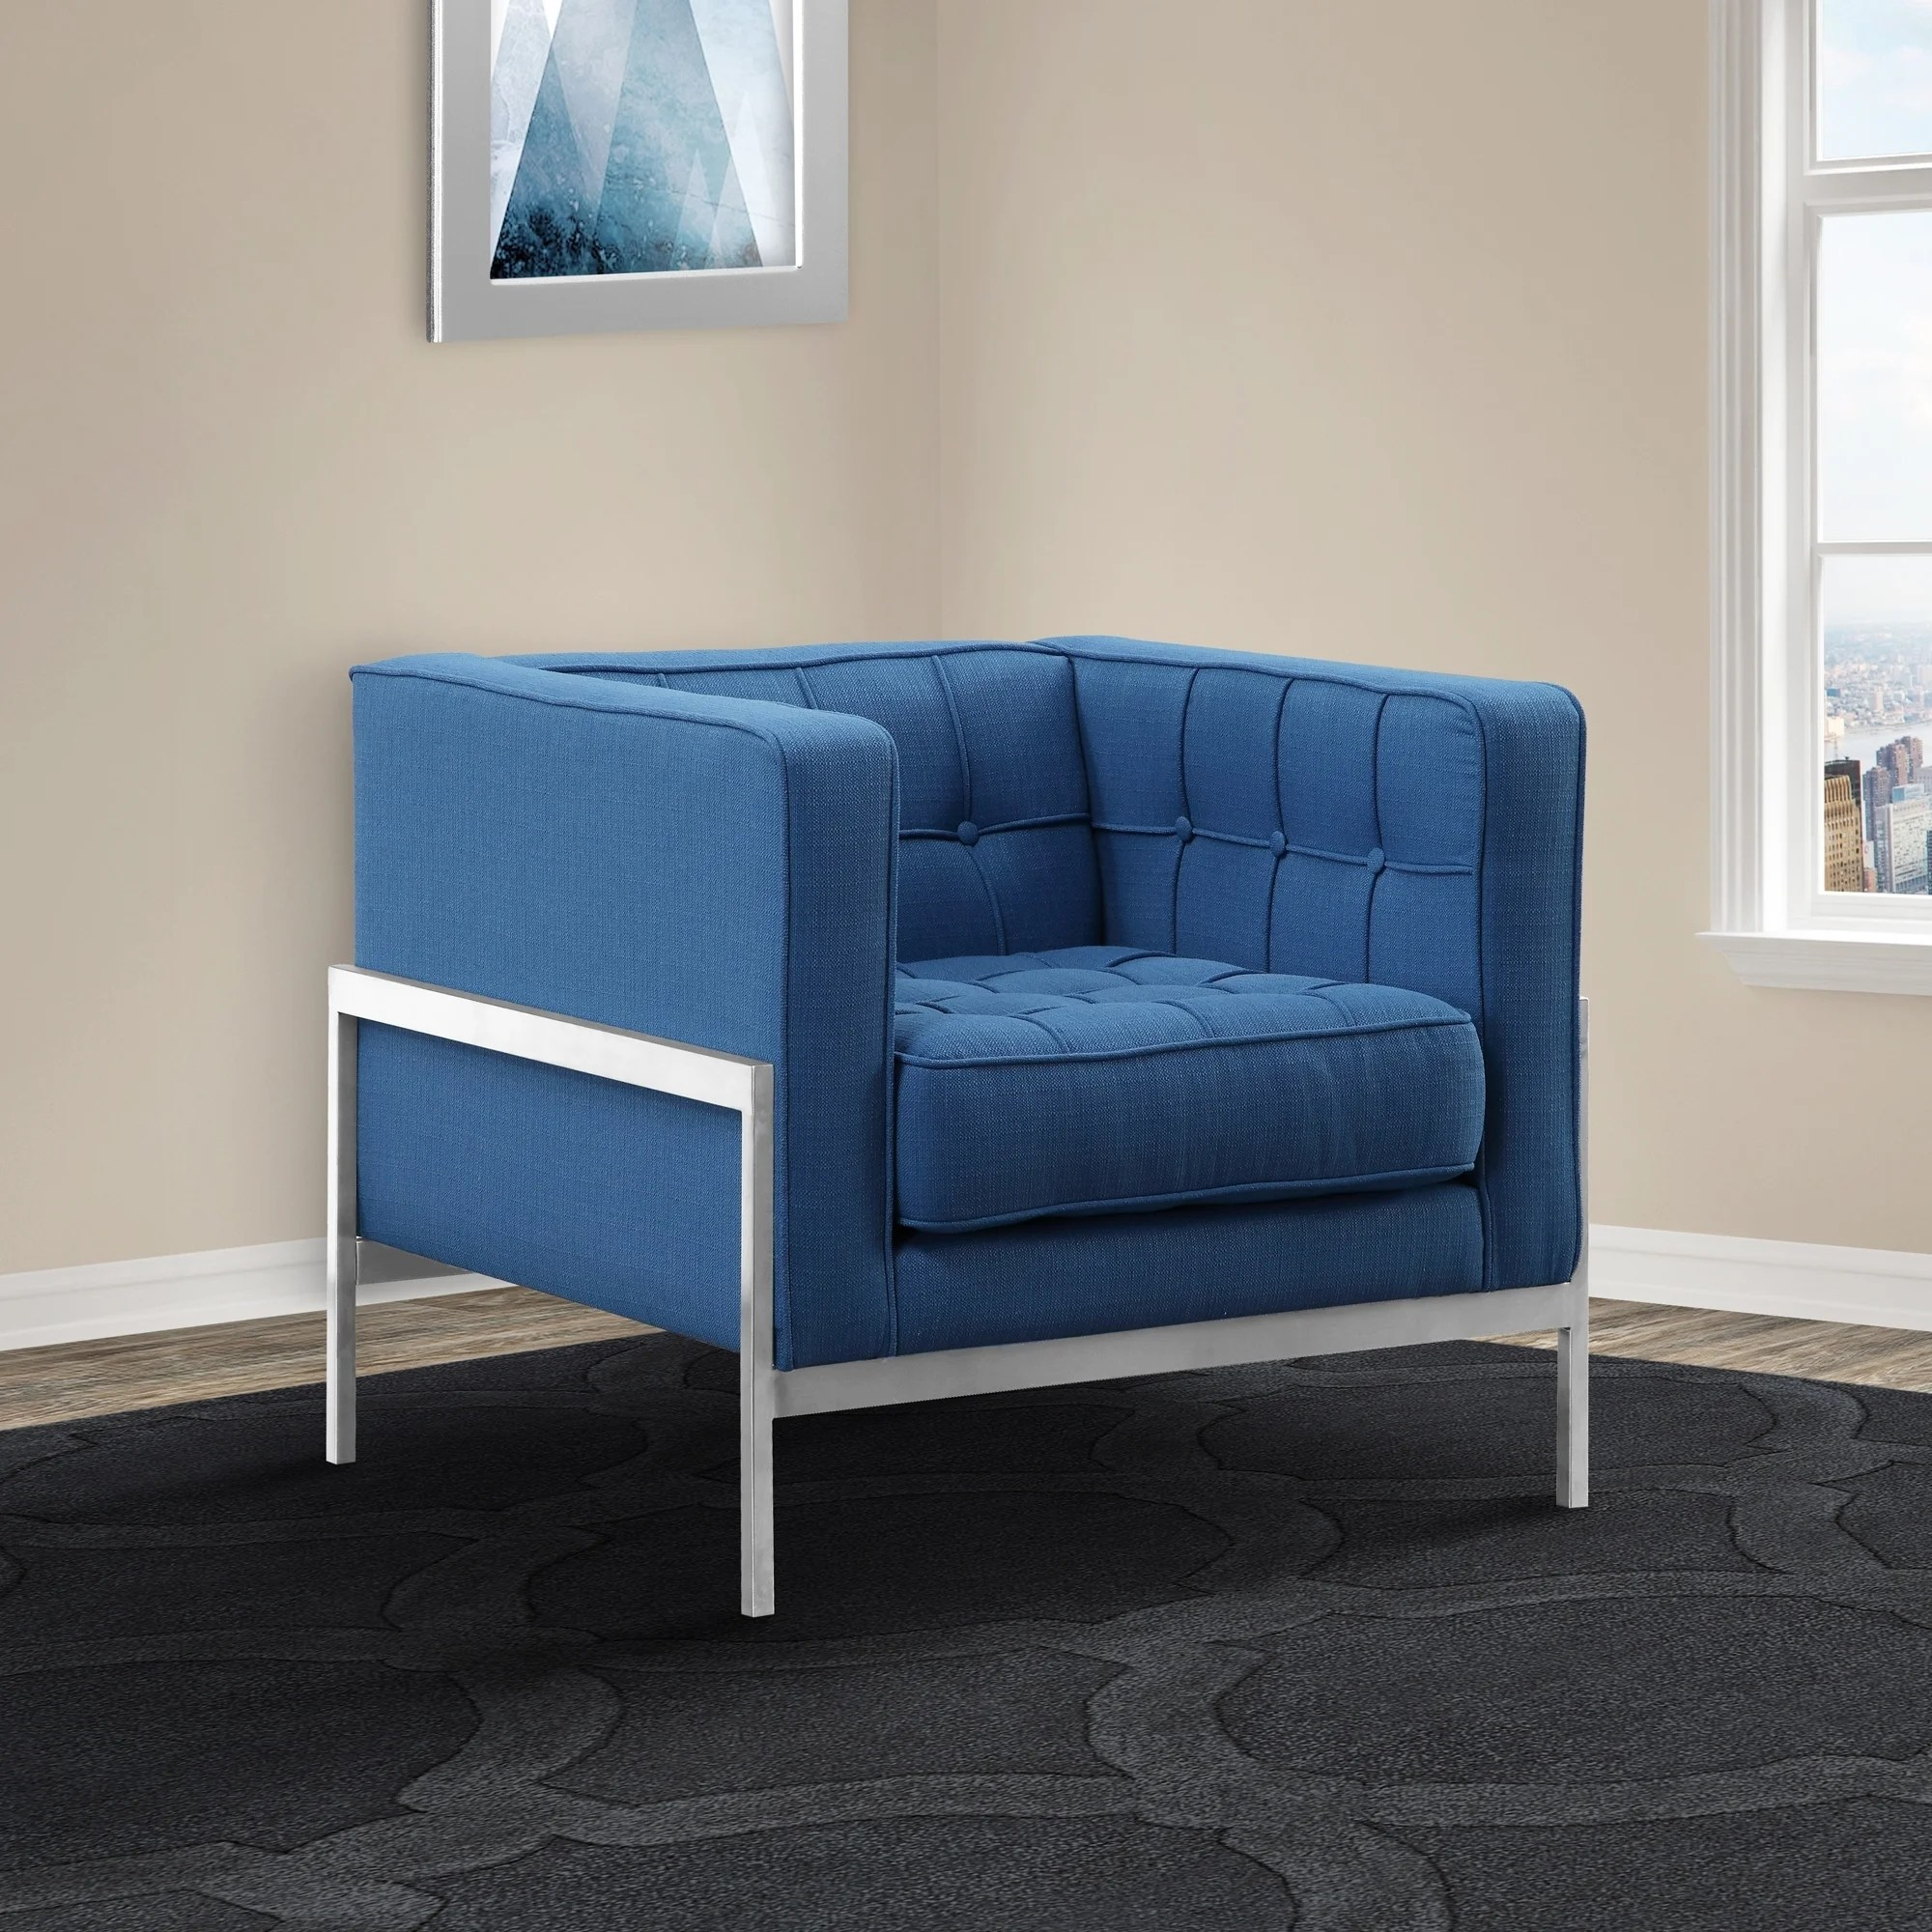 Andre Lcan1blue Contemporary Sofa Chair Blue Fabric Armen